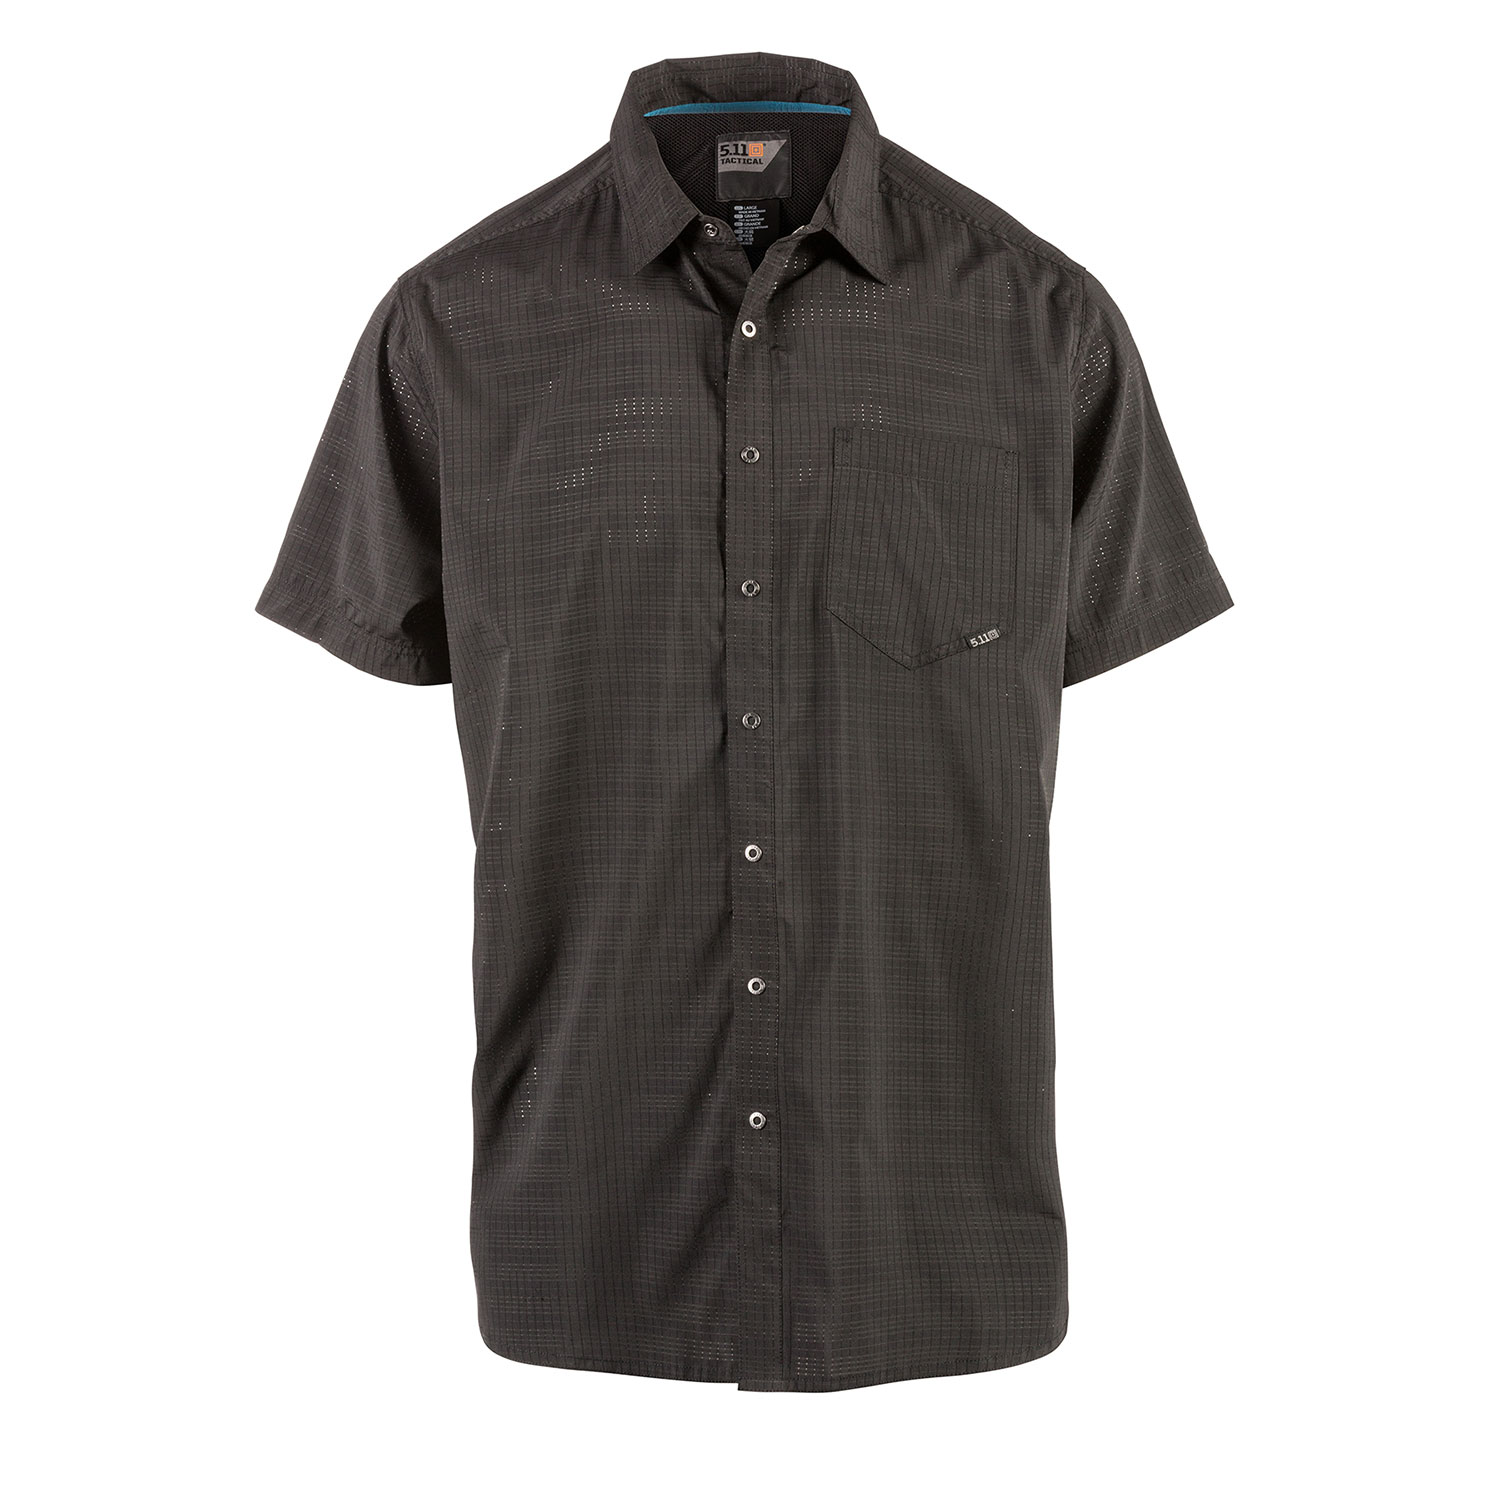 5.11 Aerial Short Sleeve Shirt